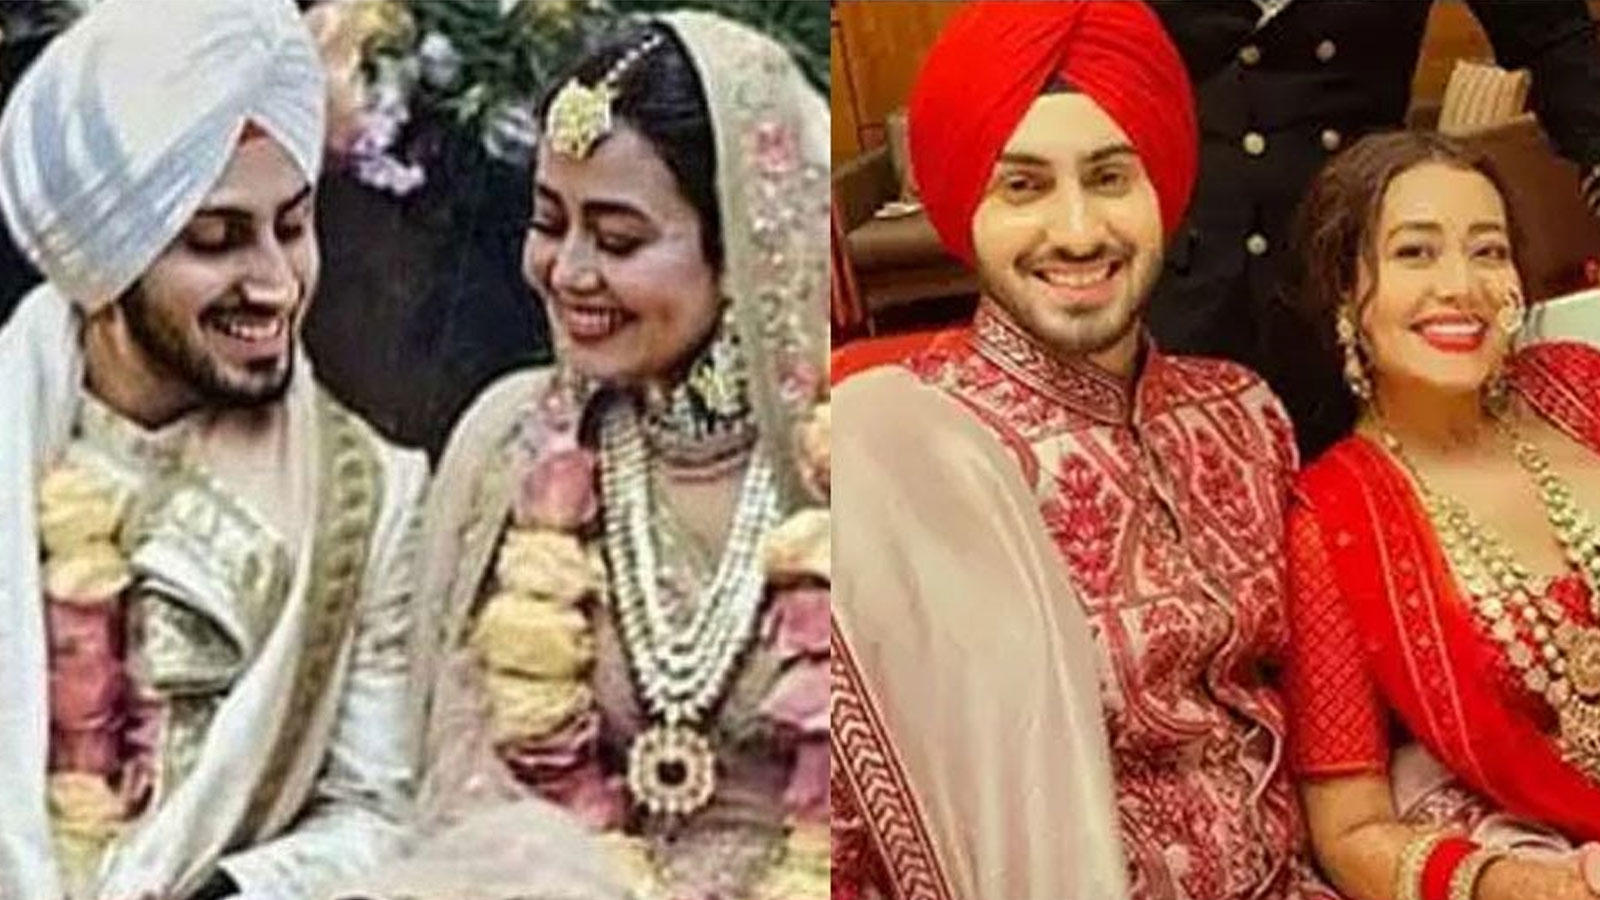 neha-kakkar-and-rohanpreet-singhs-wedding-inside-pictures-and-video-of-grand-ceremony